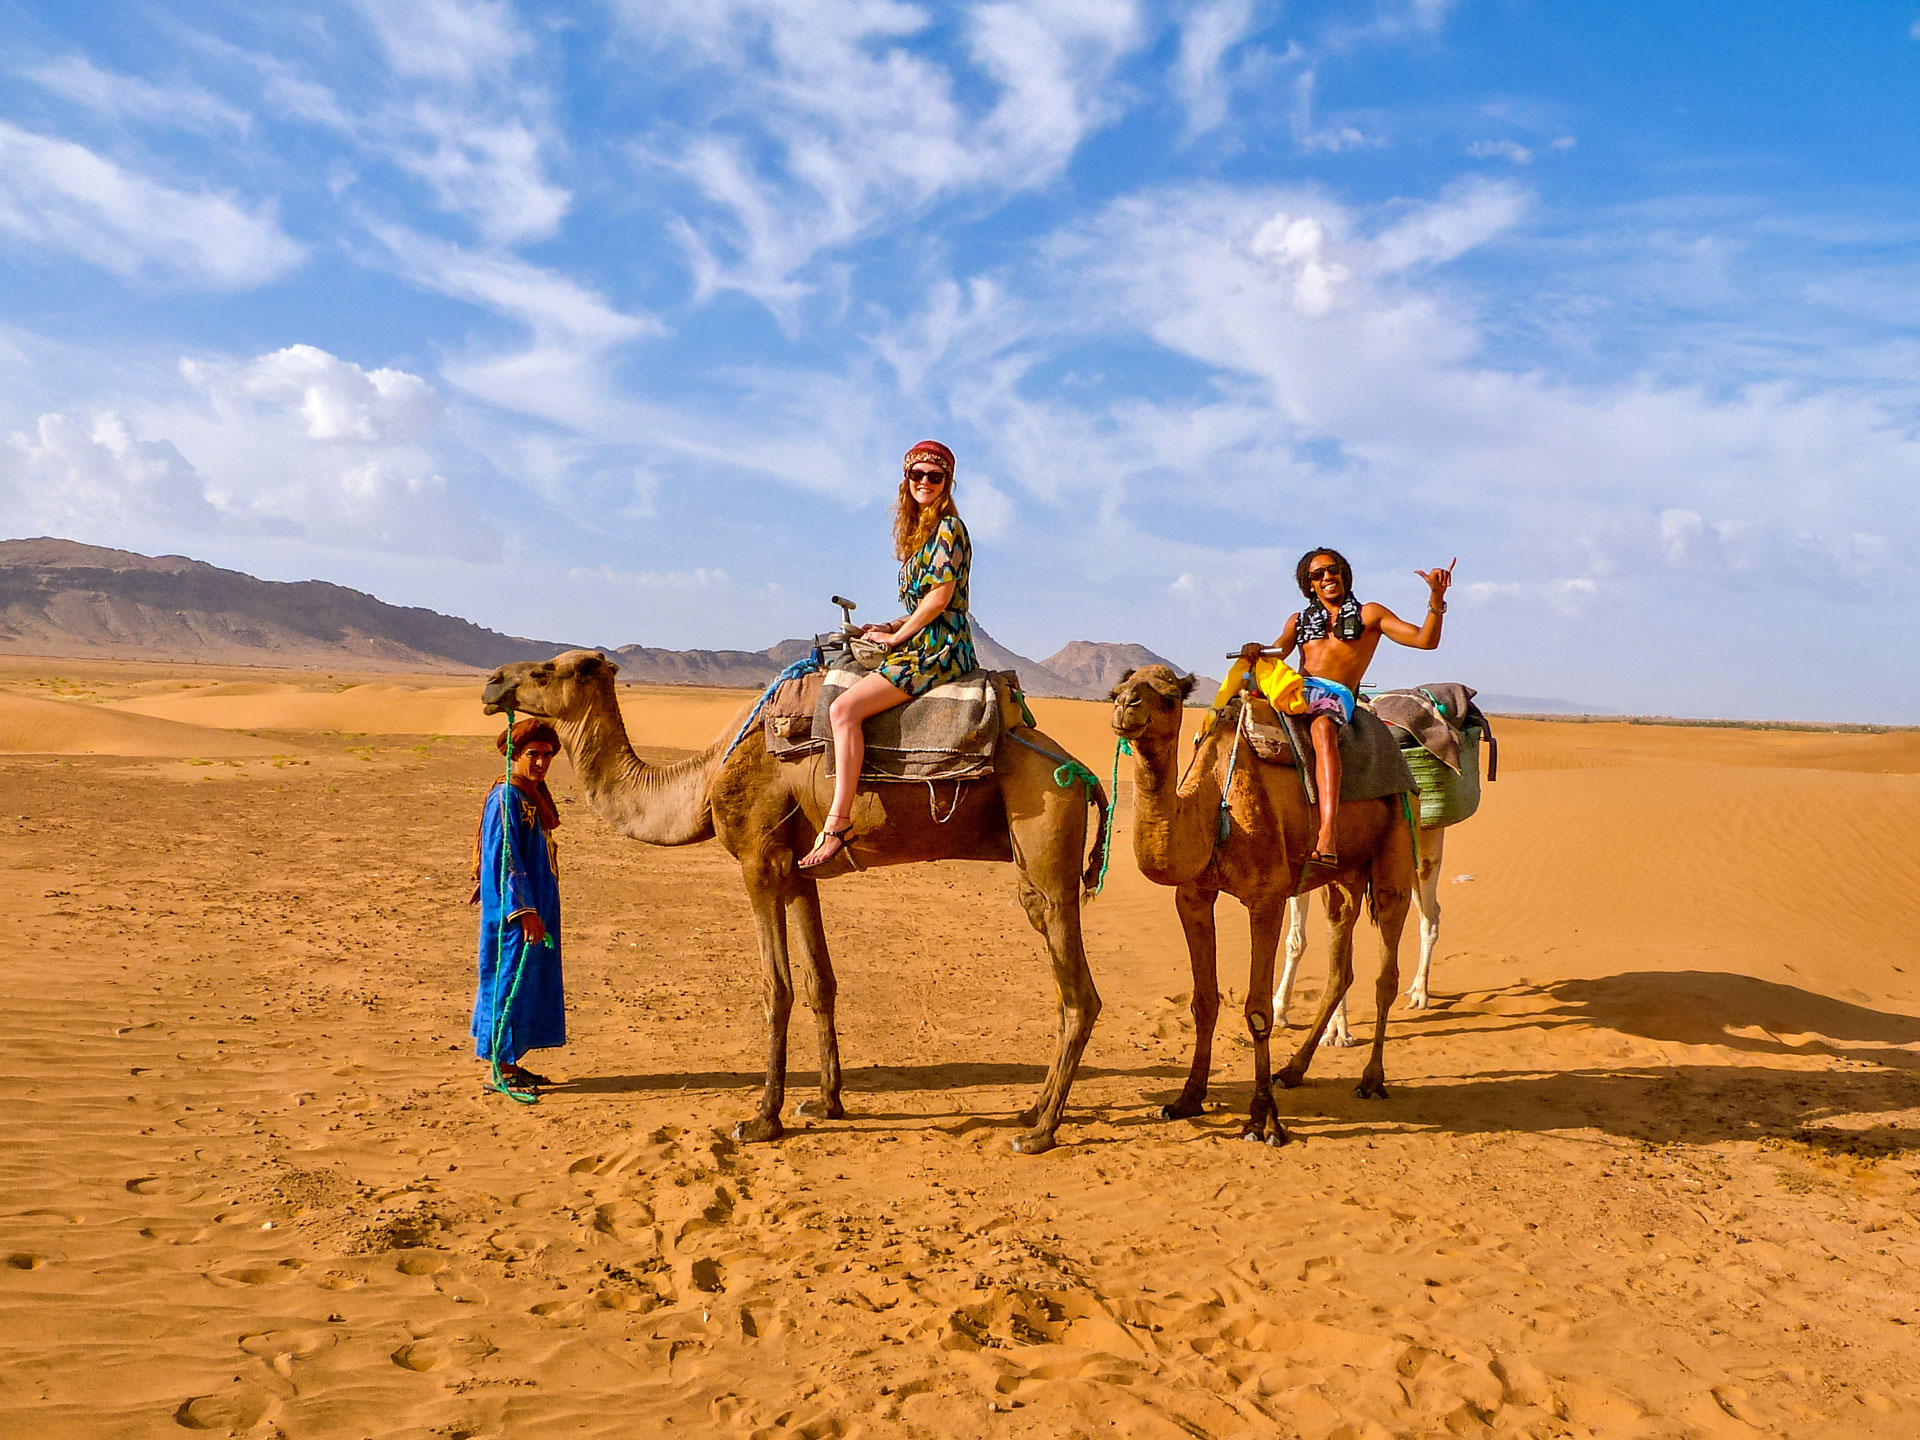 Travel couple on camels in Sahara Desert, Morocco